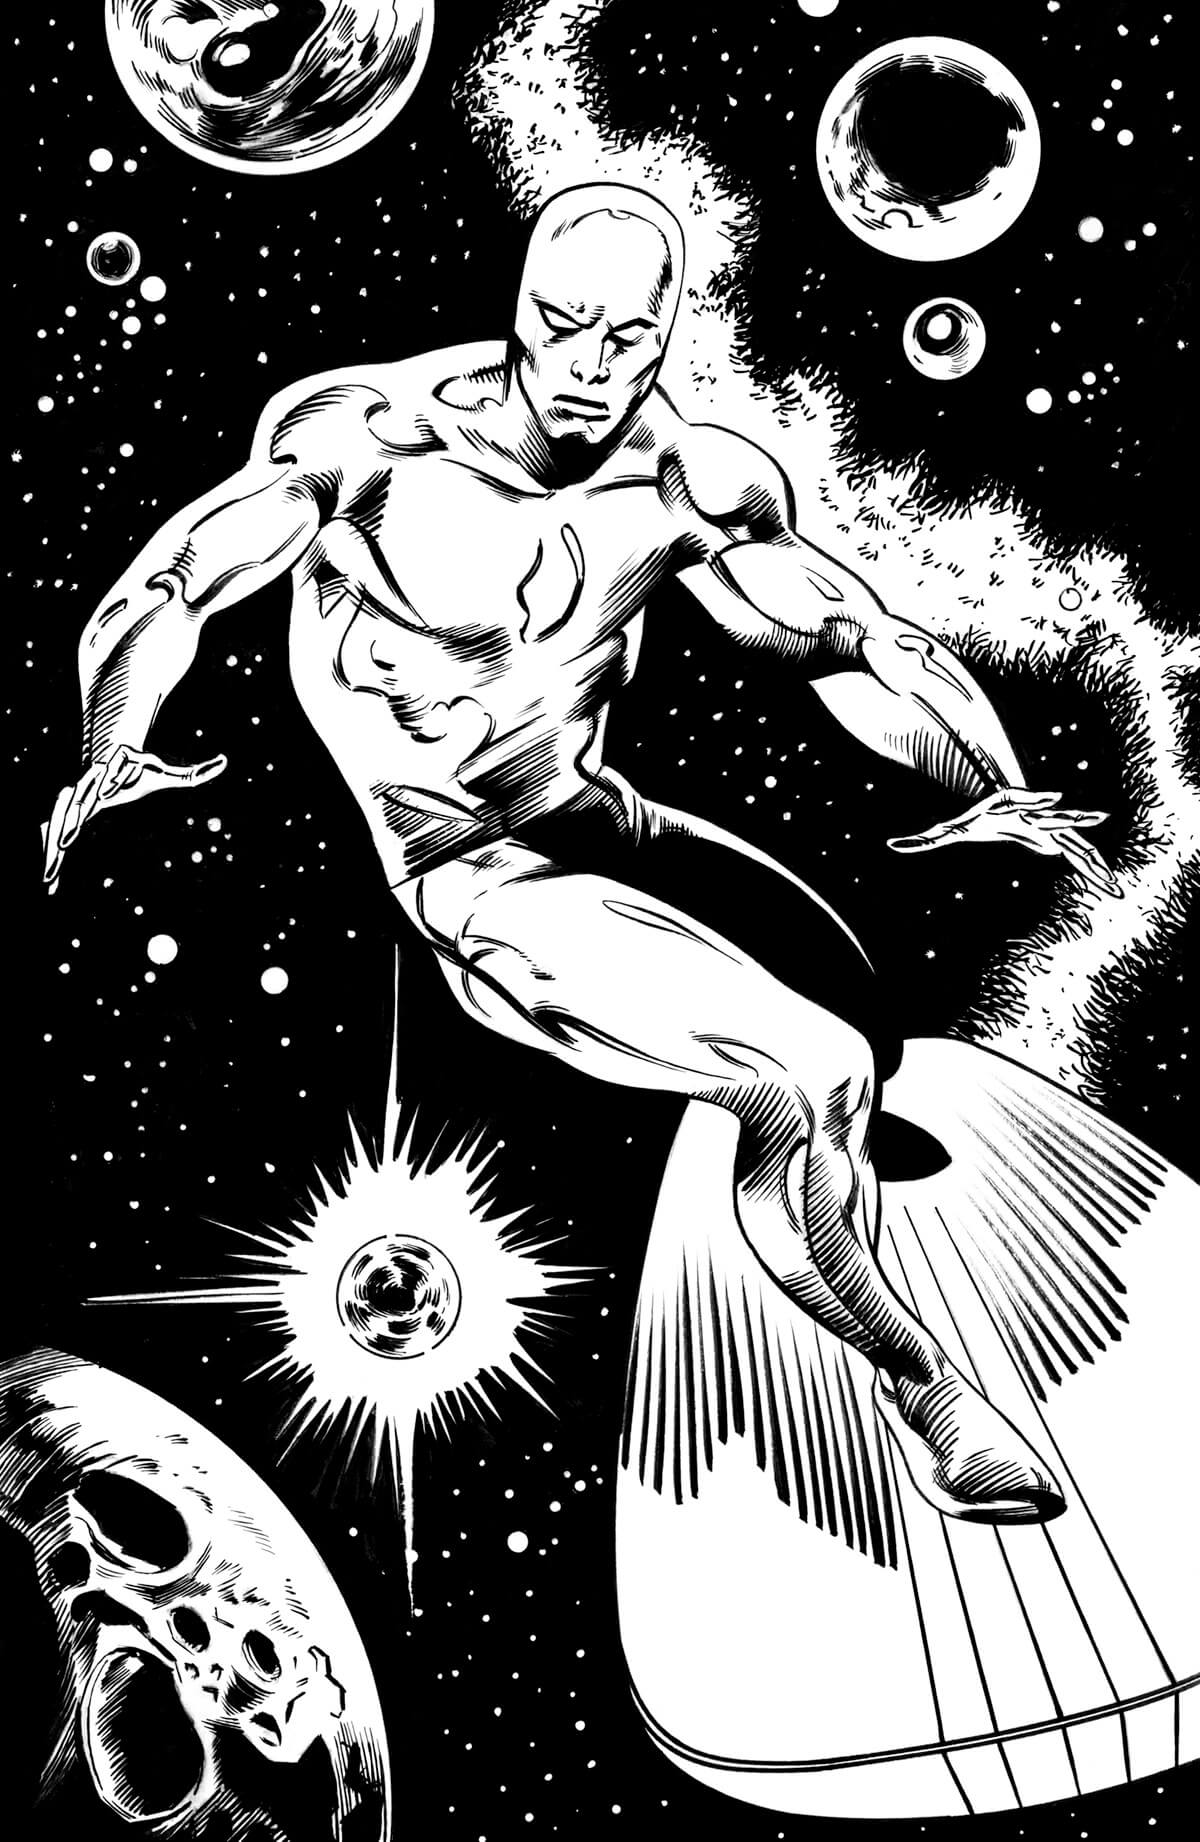 The Silver Surfer By John Buscema Catspaw Dynamics